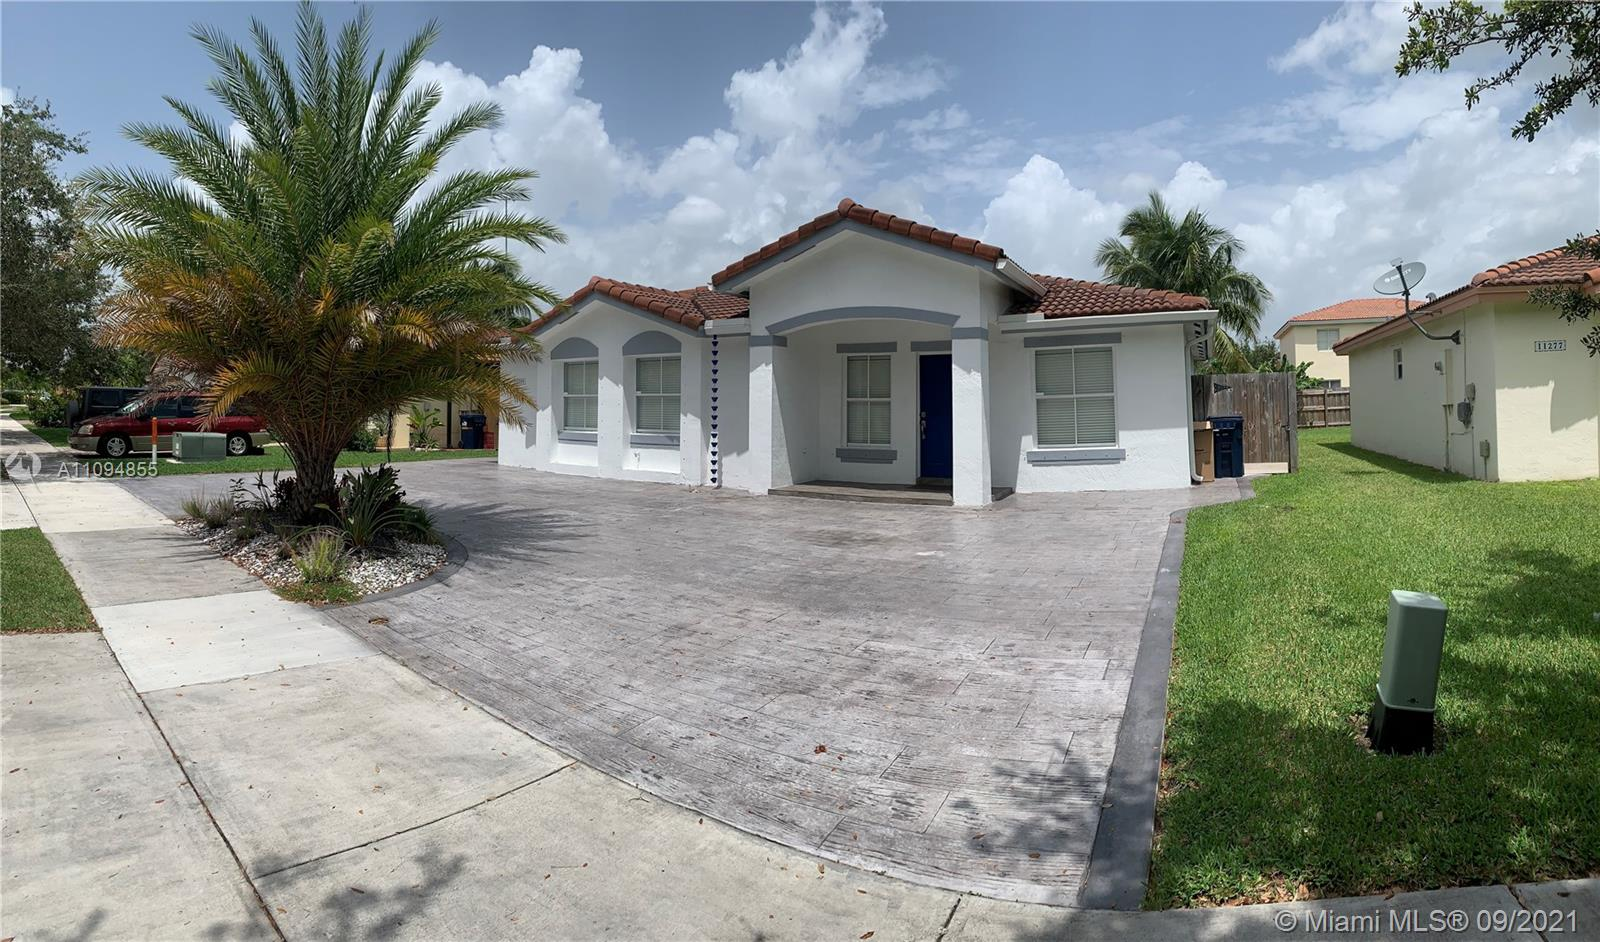 Enjoy this single family home 3/2 with 6000 sq ft lot. Backyard is fully fenced in. Beautifully painted and ready to move in. Large circular drive way. Perfect location for quick access to turnpike and US 1. Shopping center near by for groceries and restaurants around the popular south land mall. This location gives you quick access to Miami and Homestead. Black Point Marina is a 5 minute drive away.